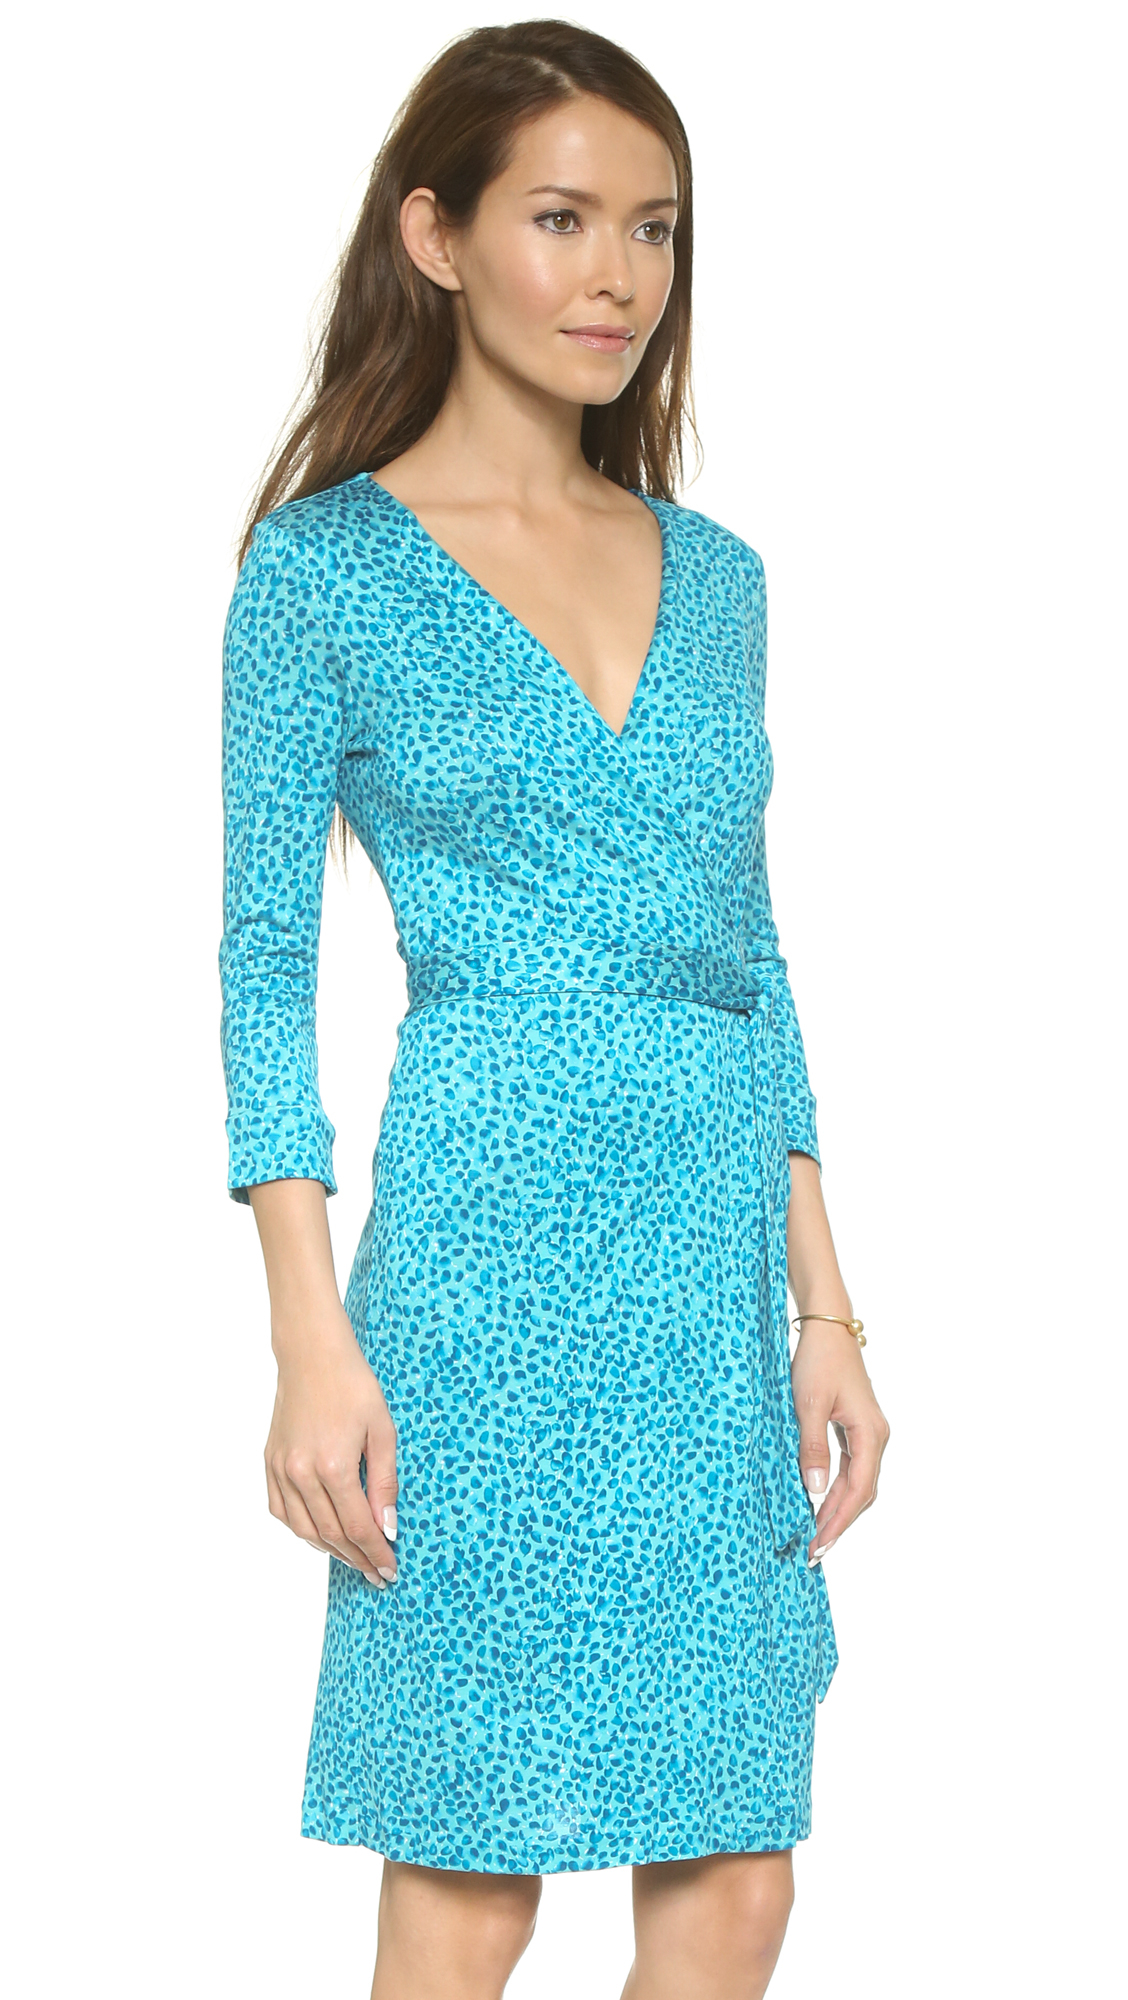 lyst diane von furstenberg new julian two wrap dress petal dreams blue in blue. Black Bedroom Furniture Sets. Home Design Ideas